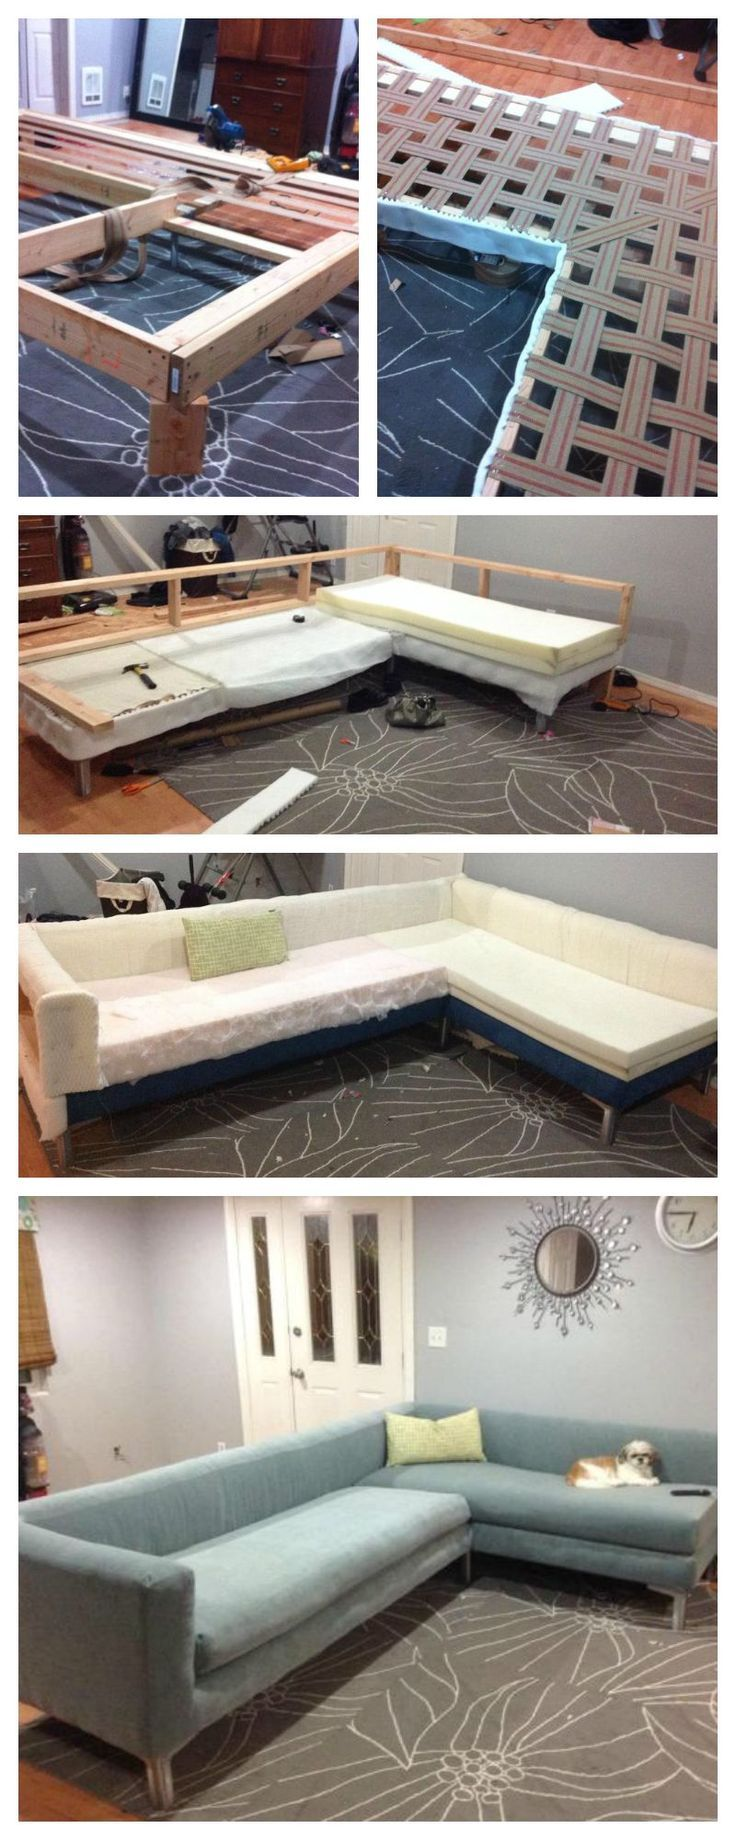 best 25 building your own home ideas on pinterest build your build your own sofa or couch modern style blue pretty sectional how to tutorial upholster frame cushion if you are really into doing it yourself this